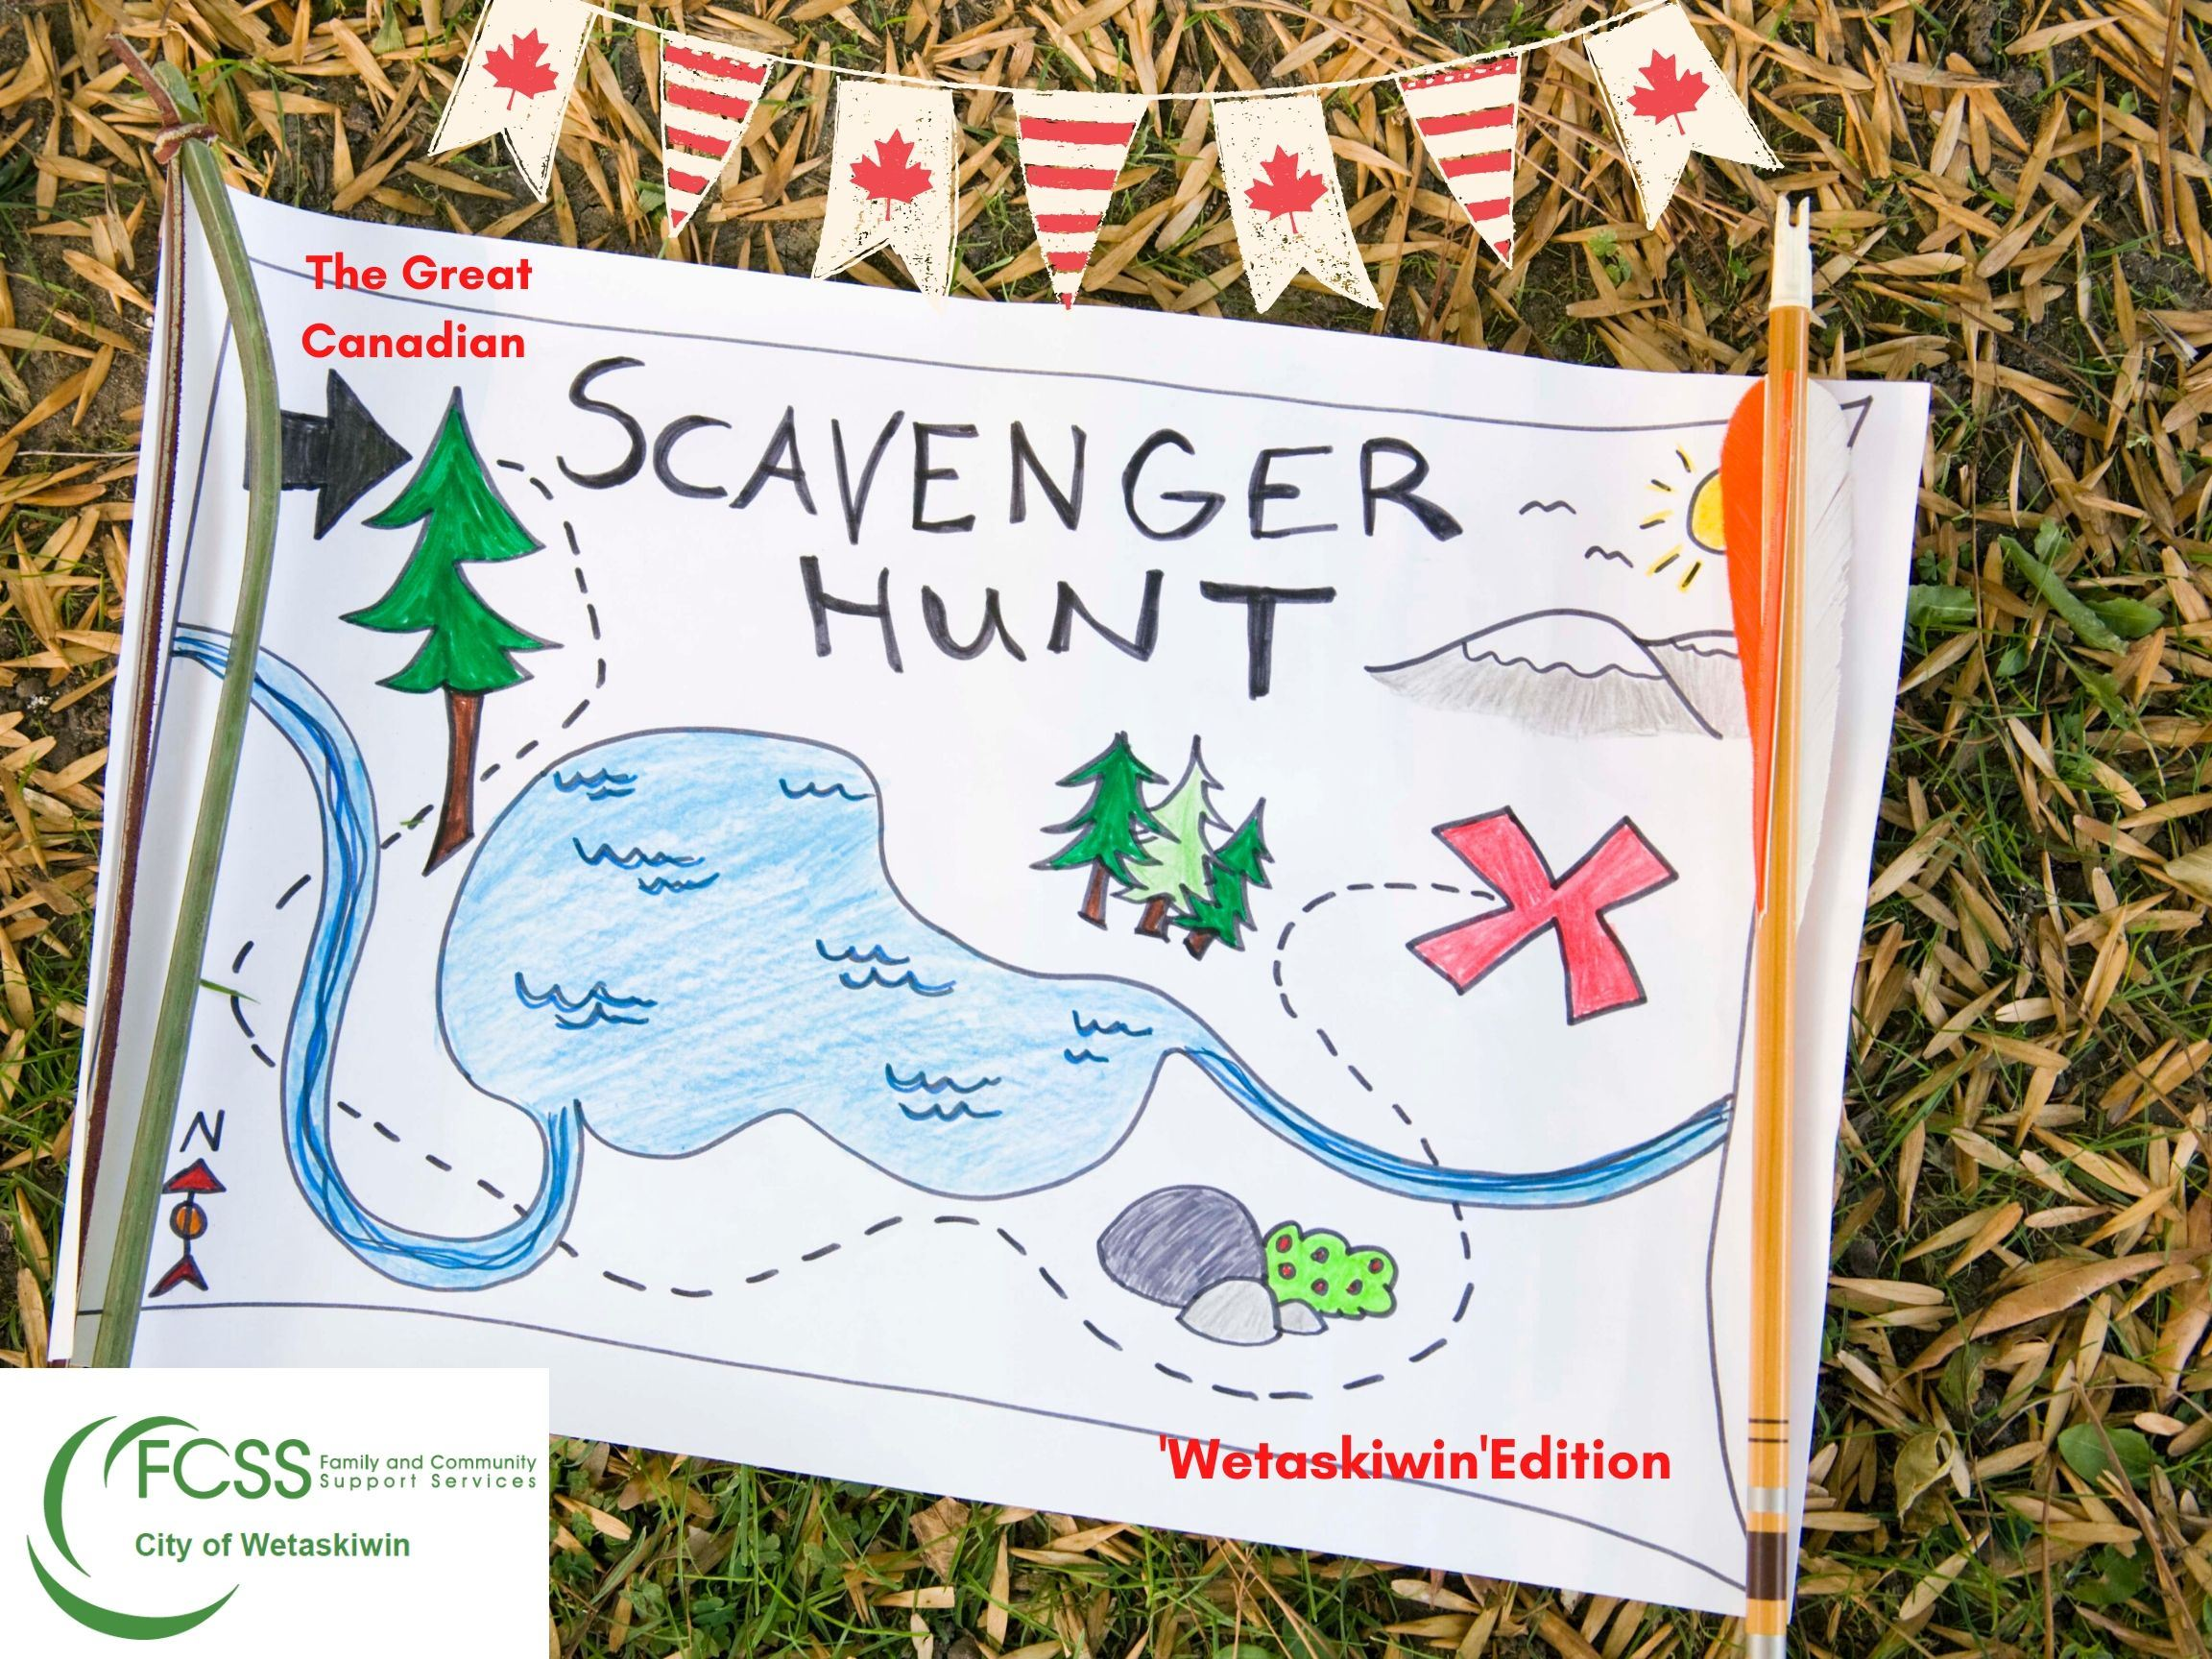 Virtual Canada Day Scavenger Hunt - July 1st